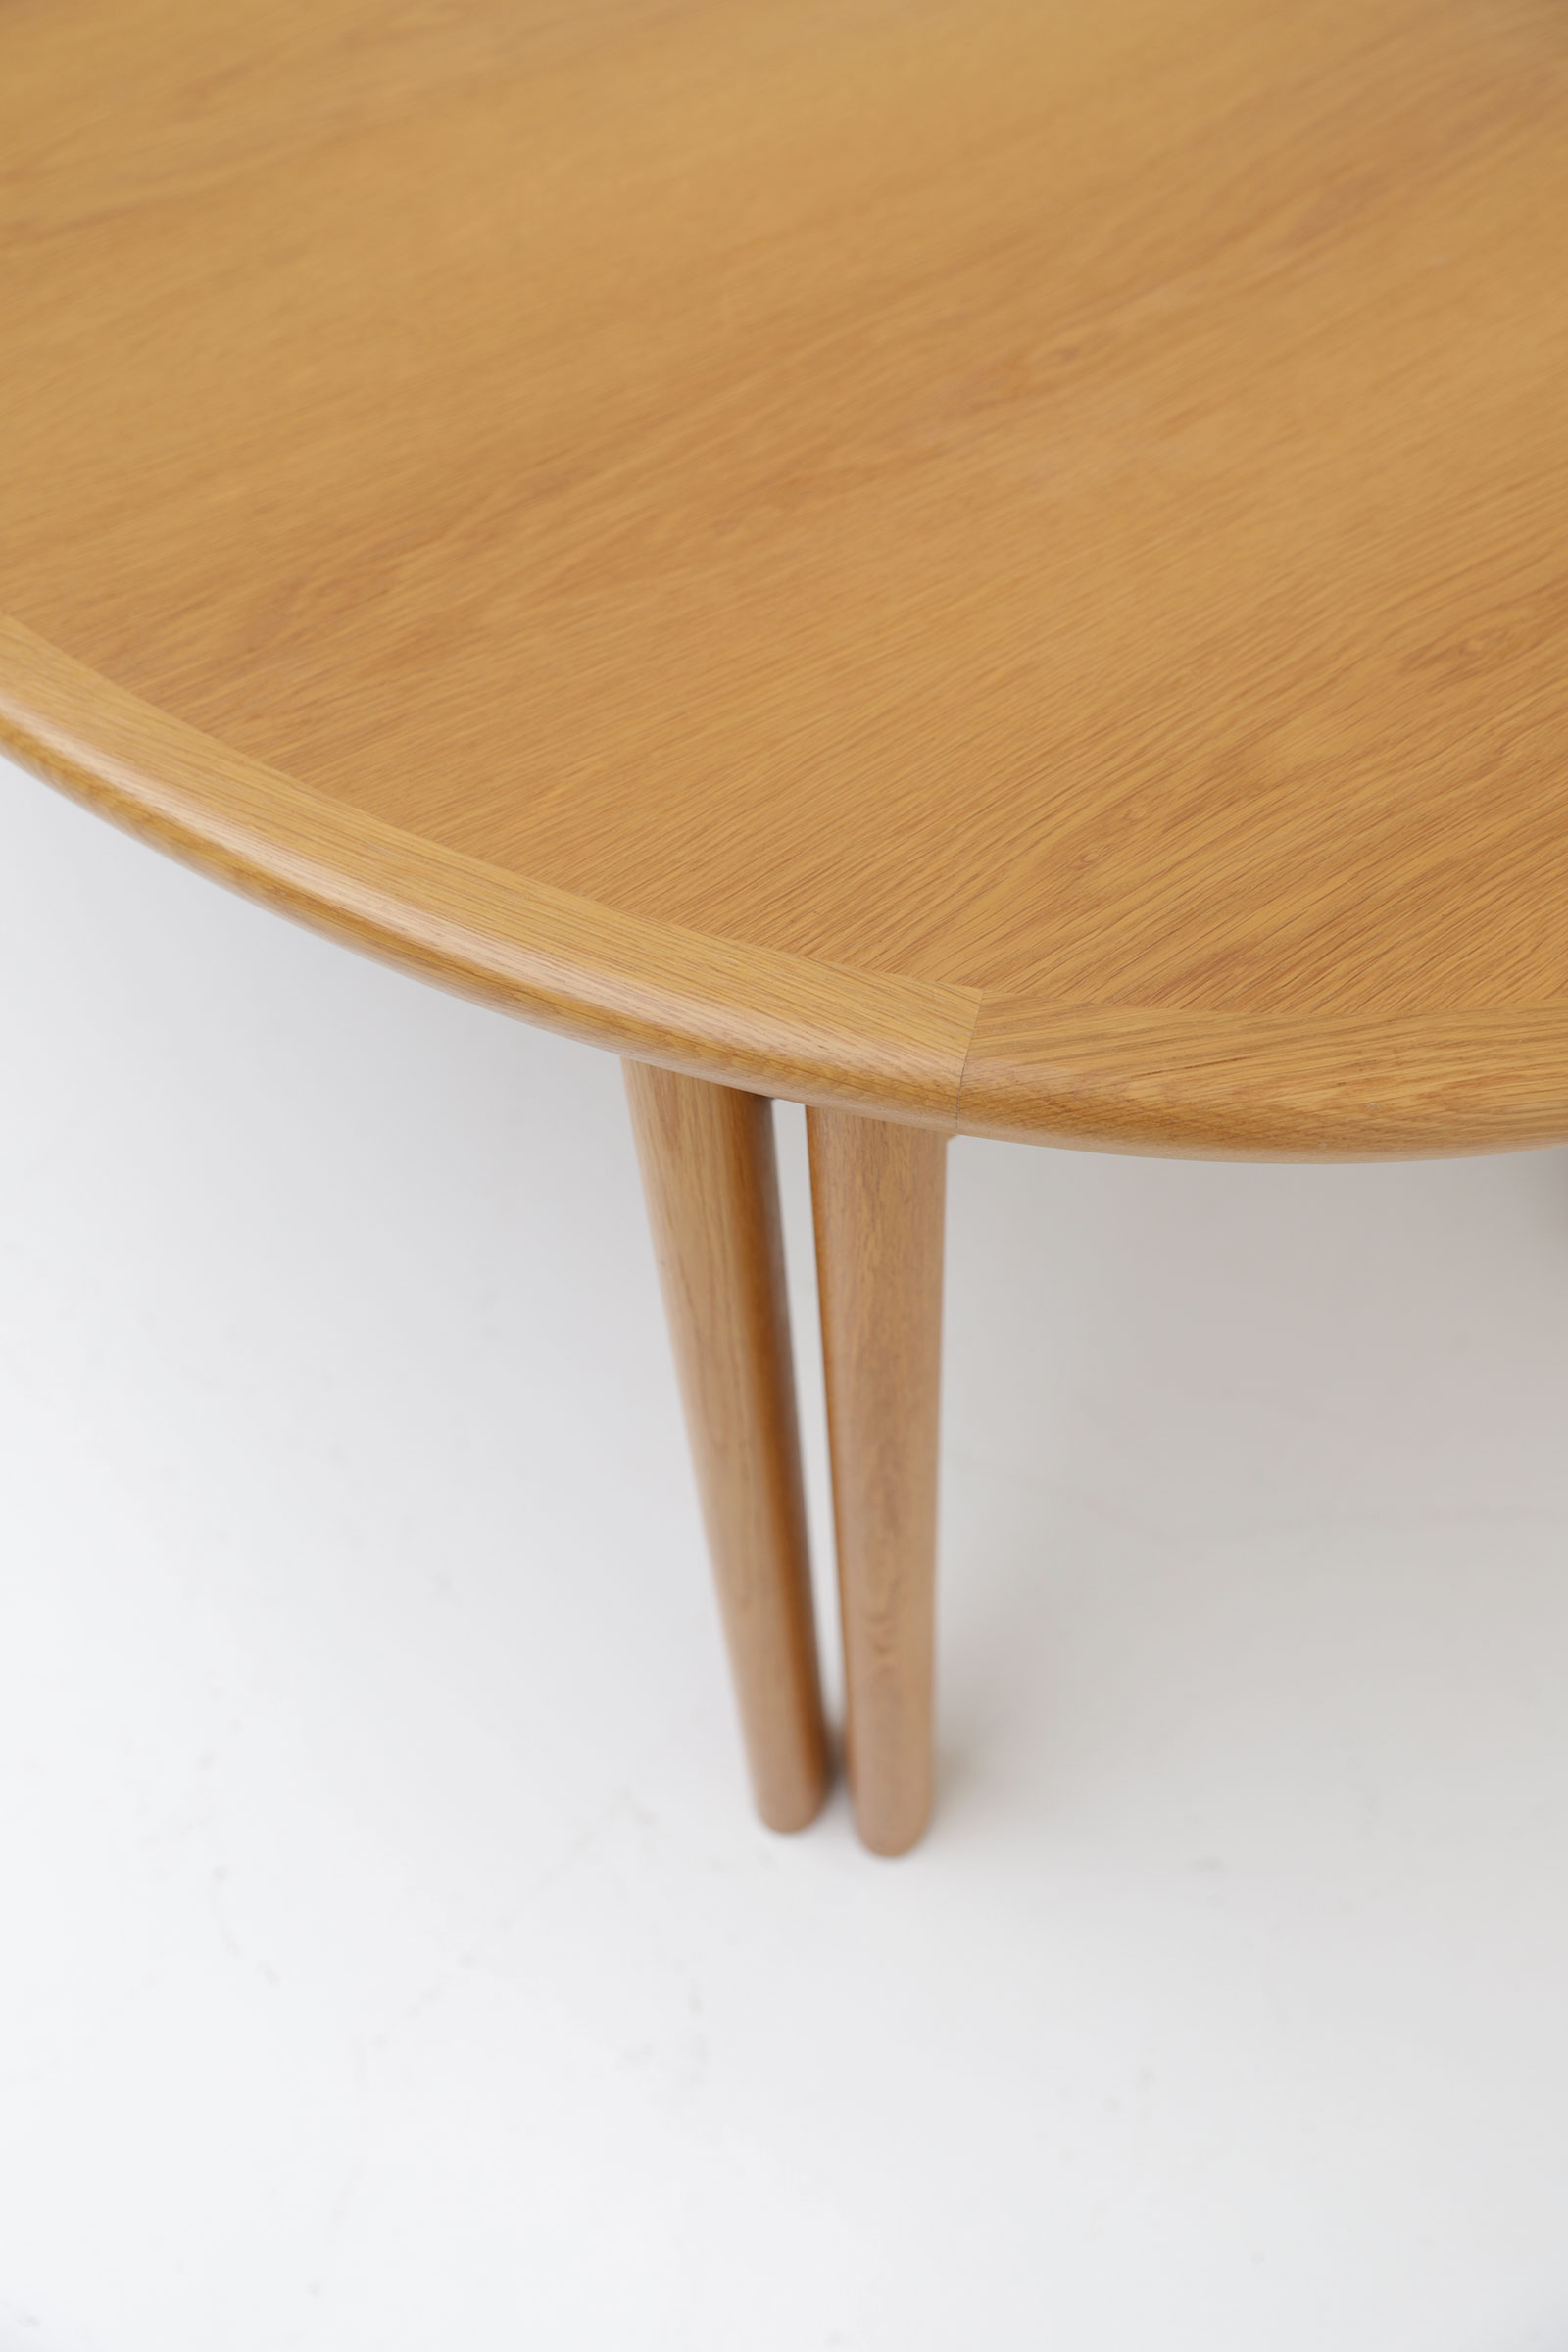 Oak Dining Table Van Den Berghe Pauvers